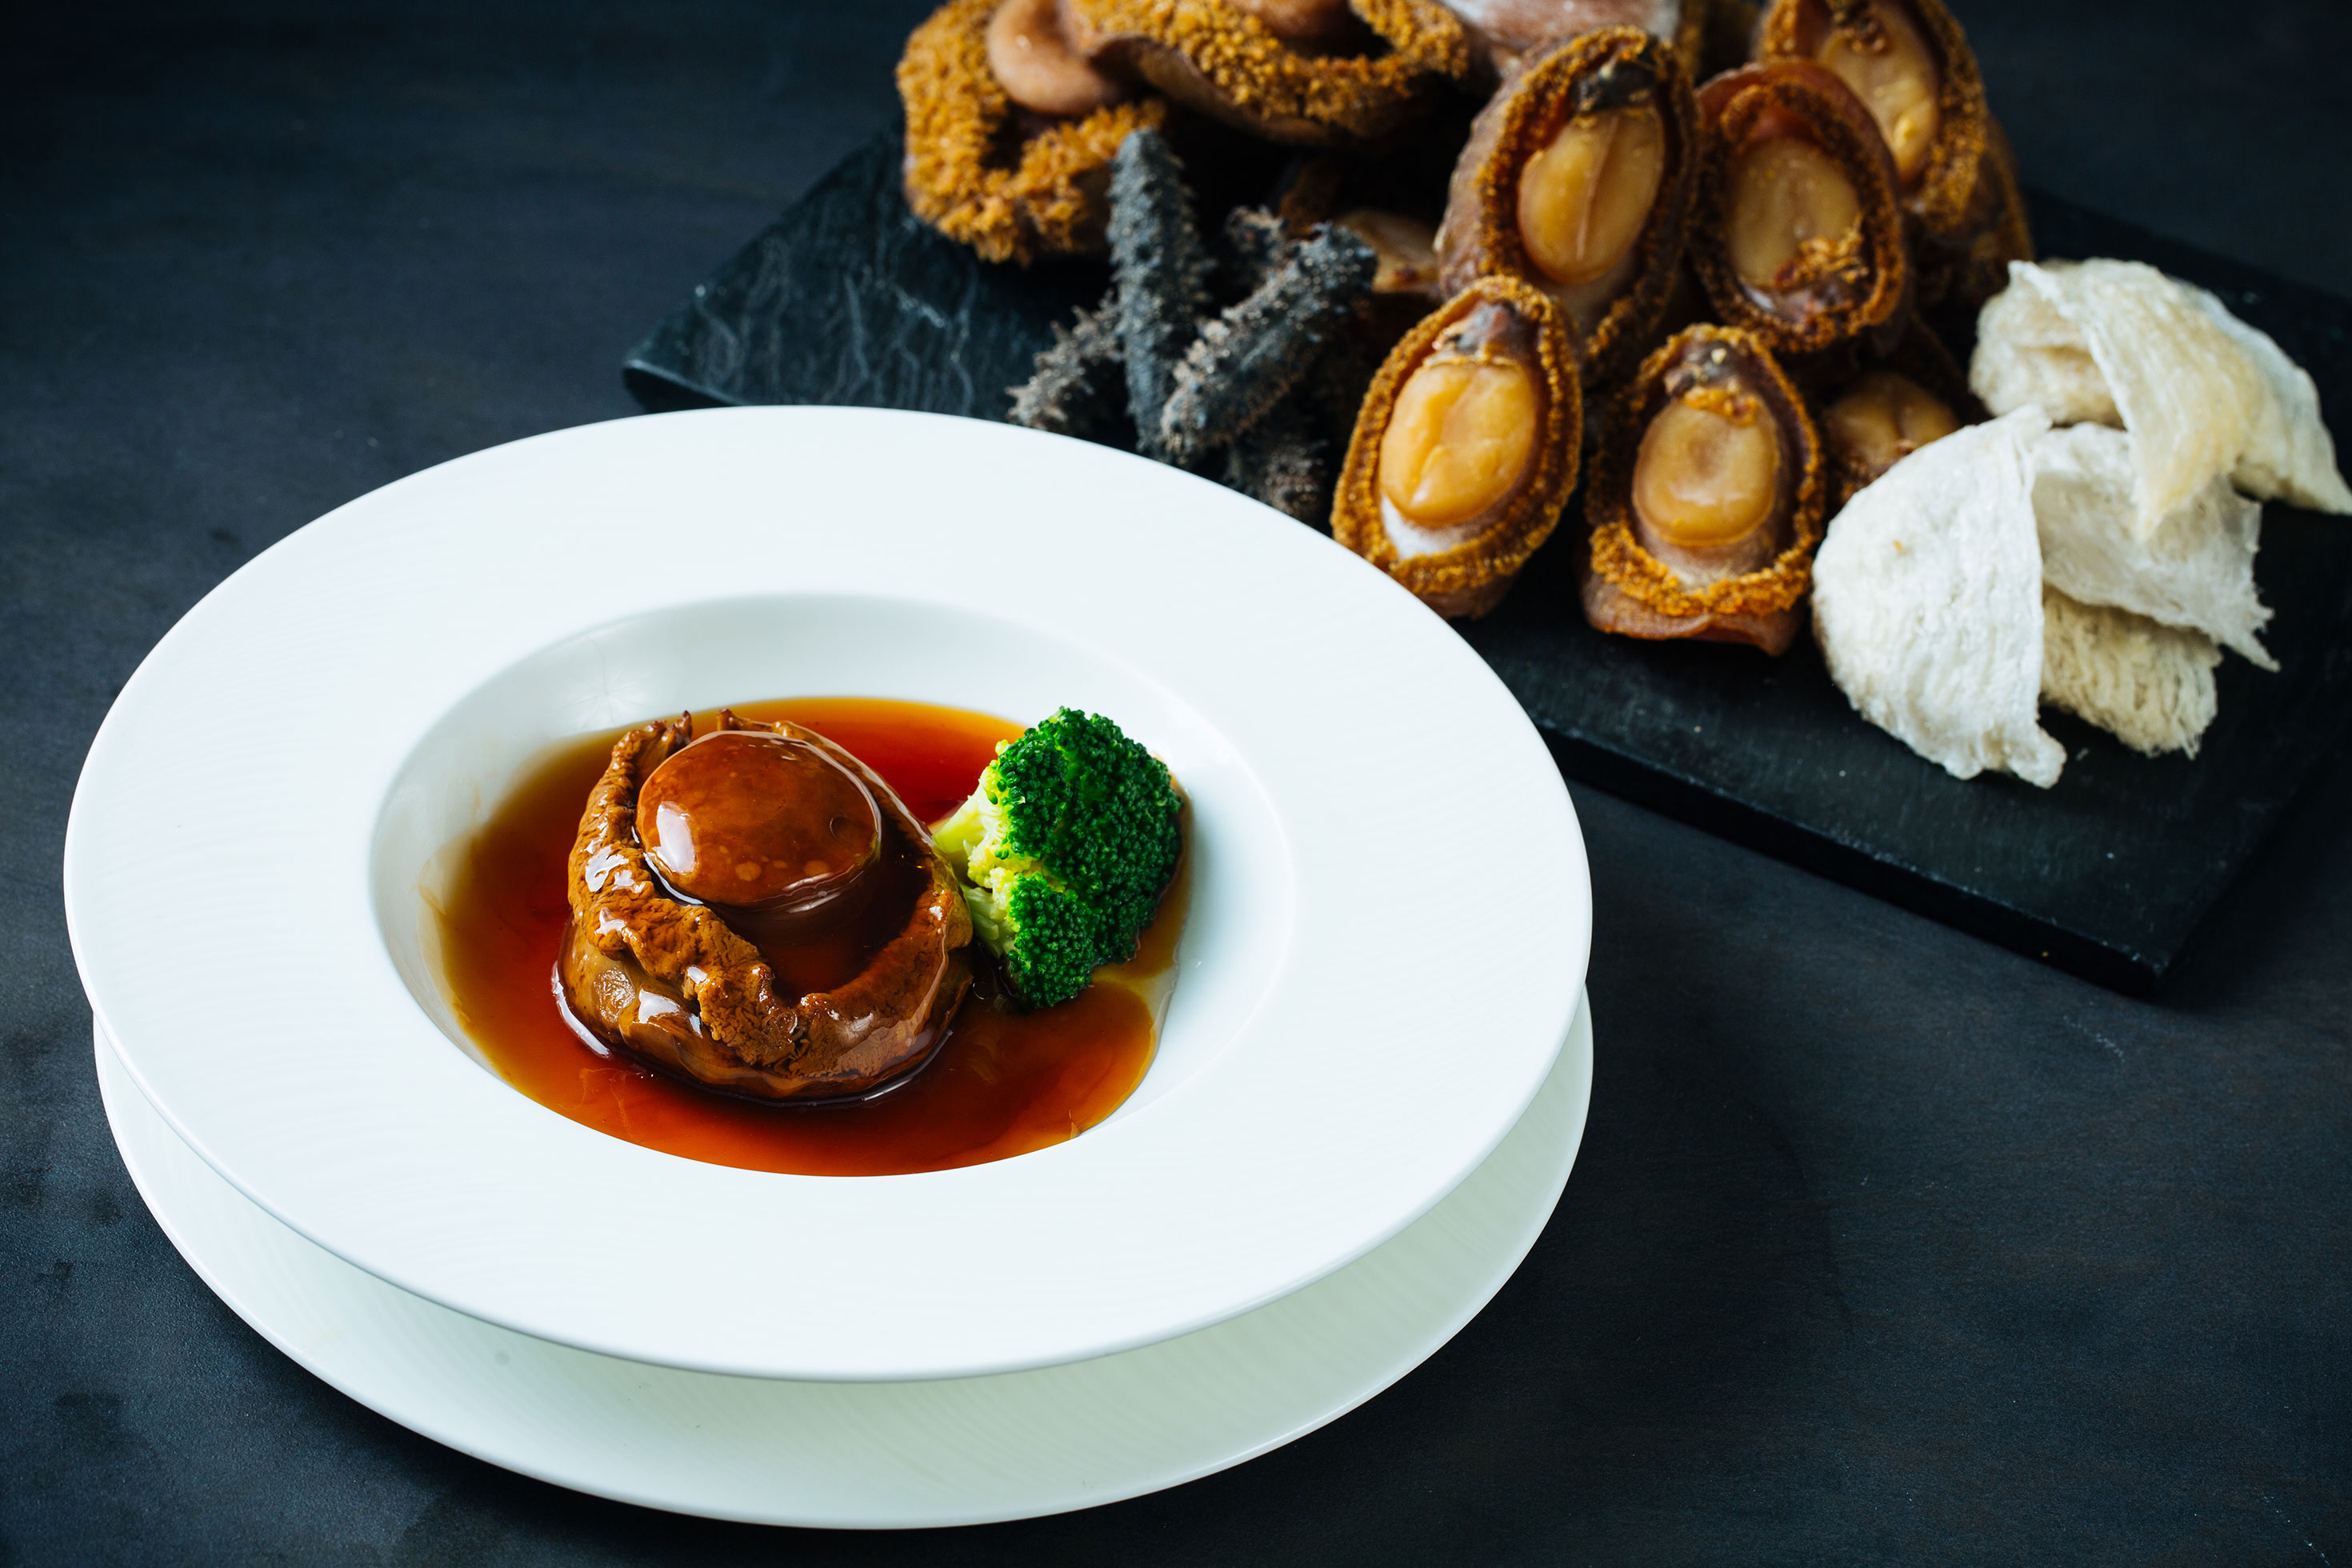 Braised Whole South African Abalone with Oyster Sauce